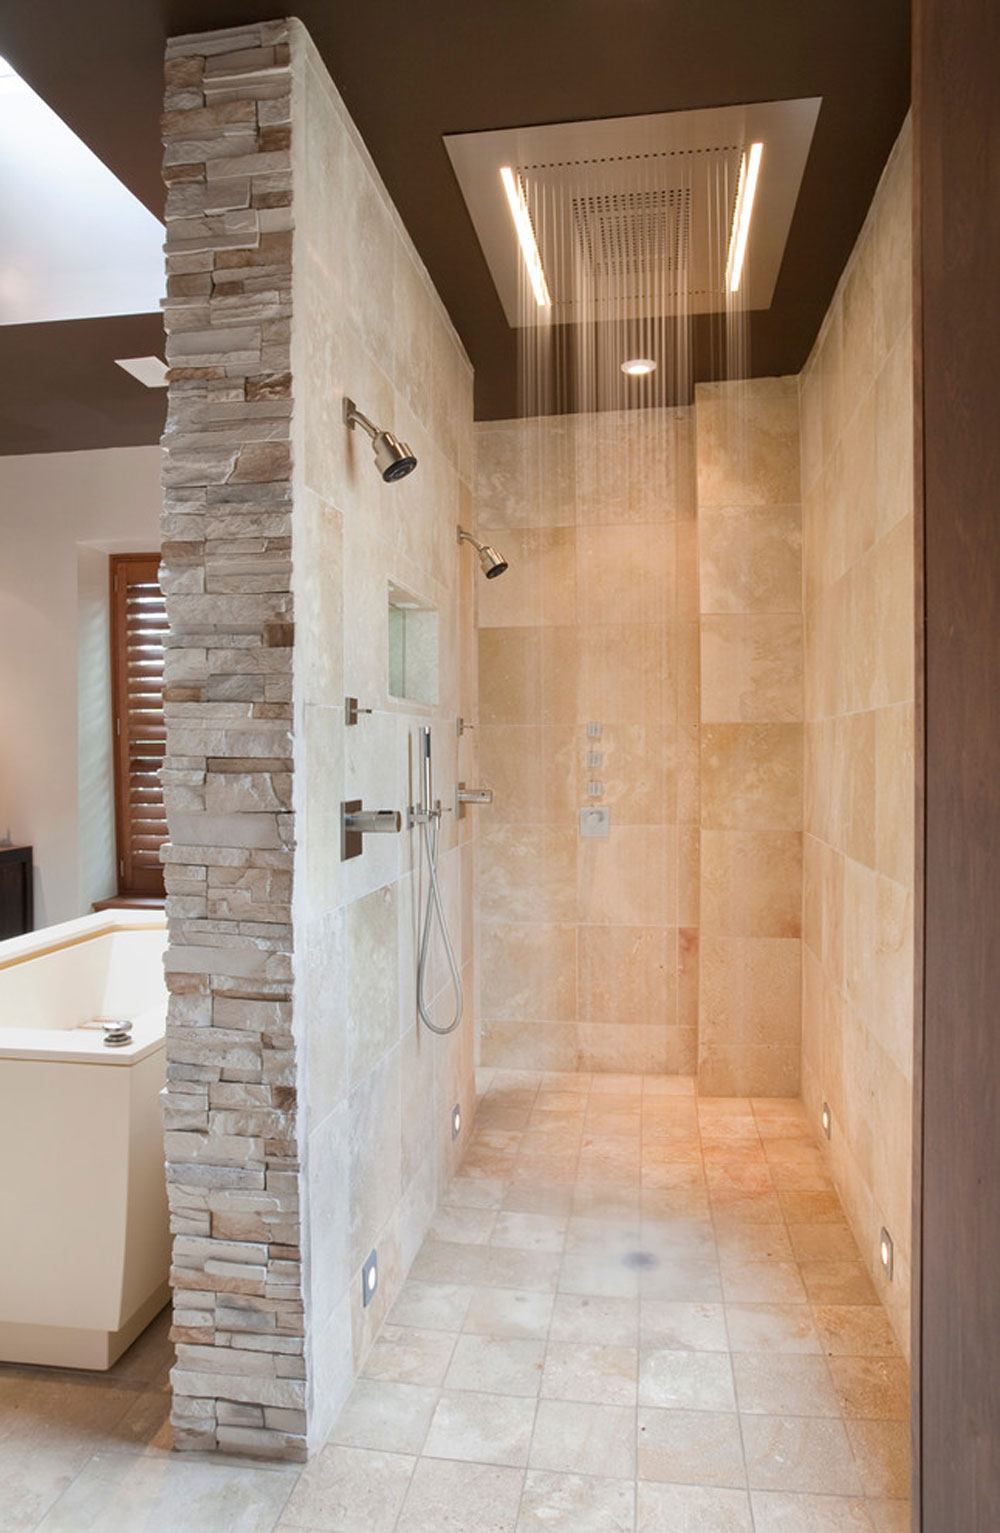 19.-St-by-ART-Design-Build shower niche ideas and best practices for your bathroom